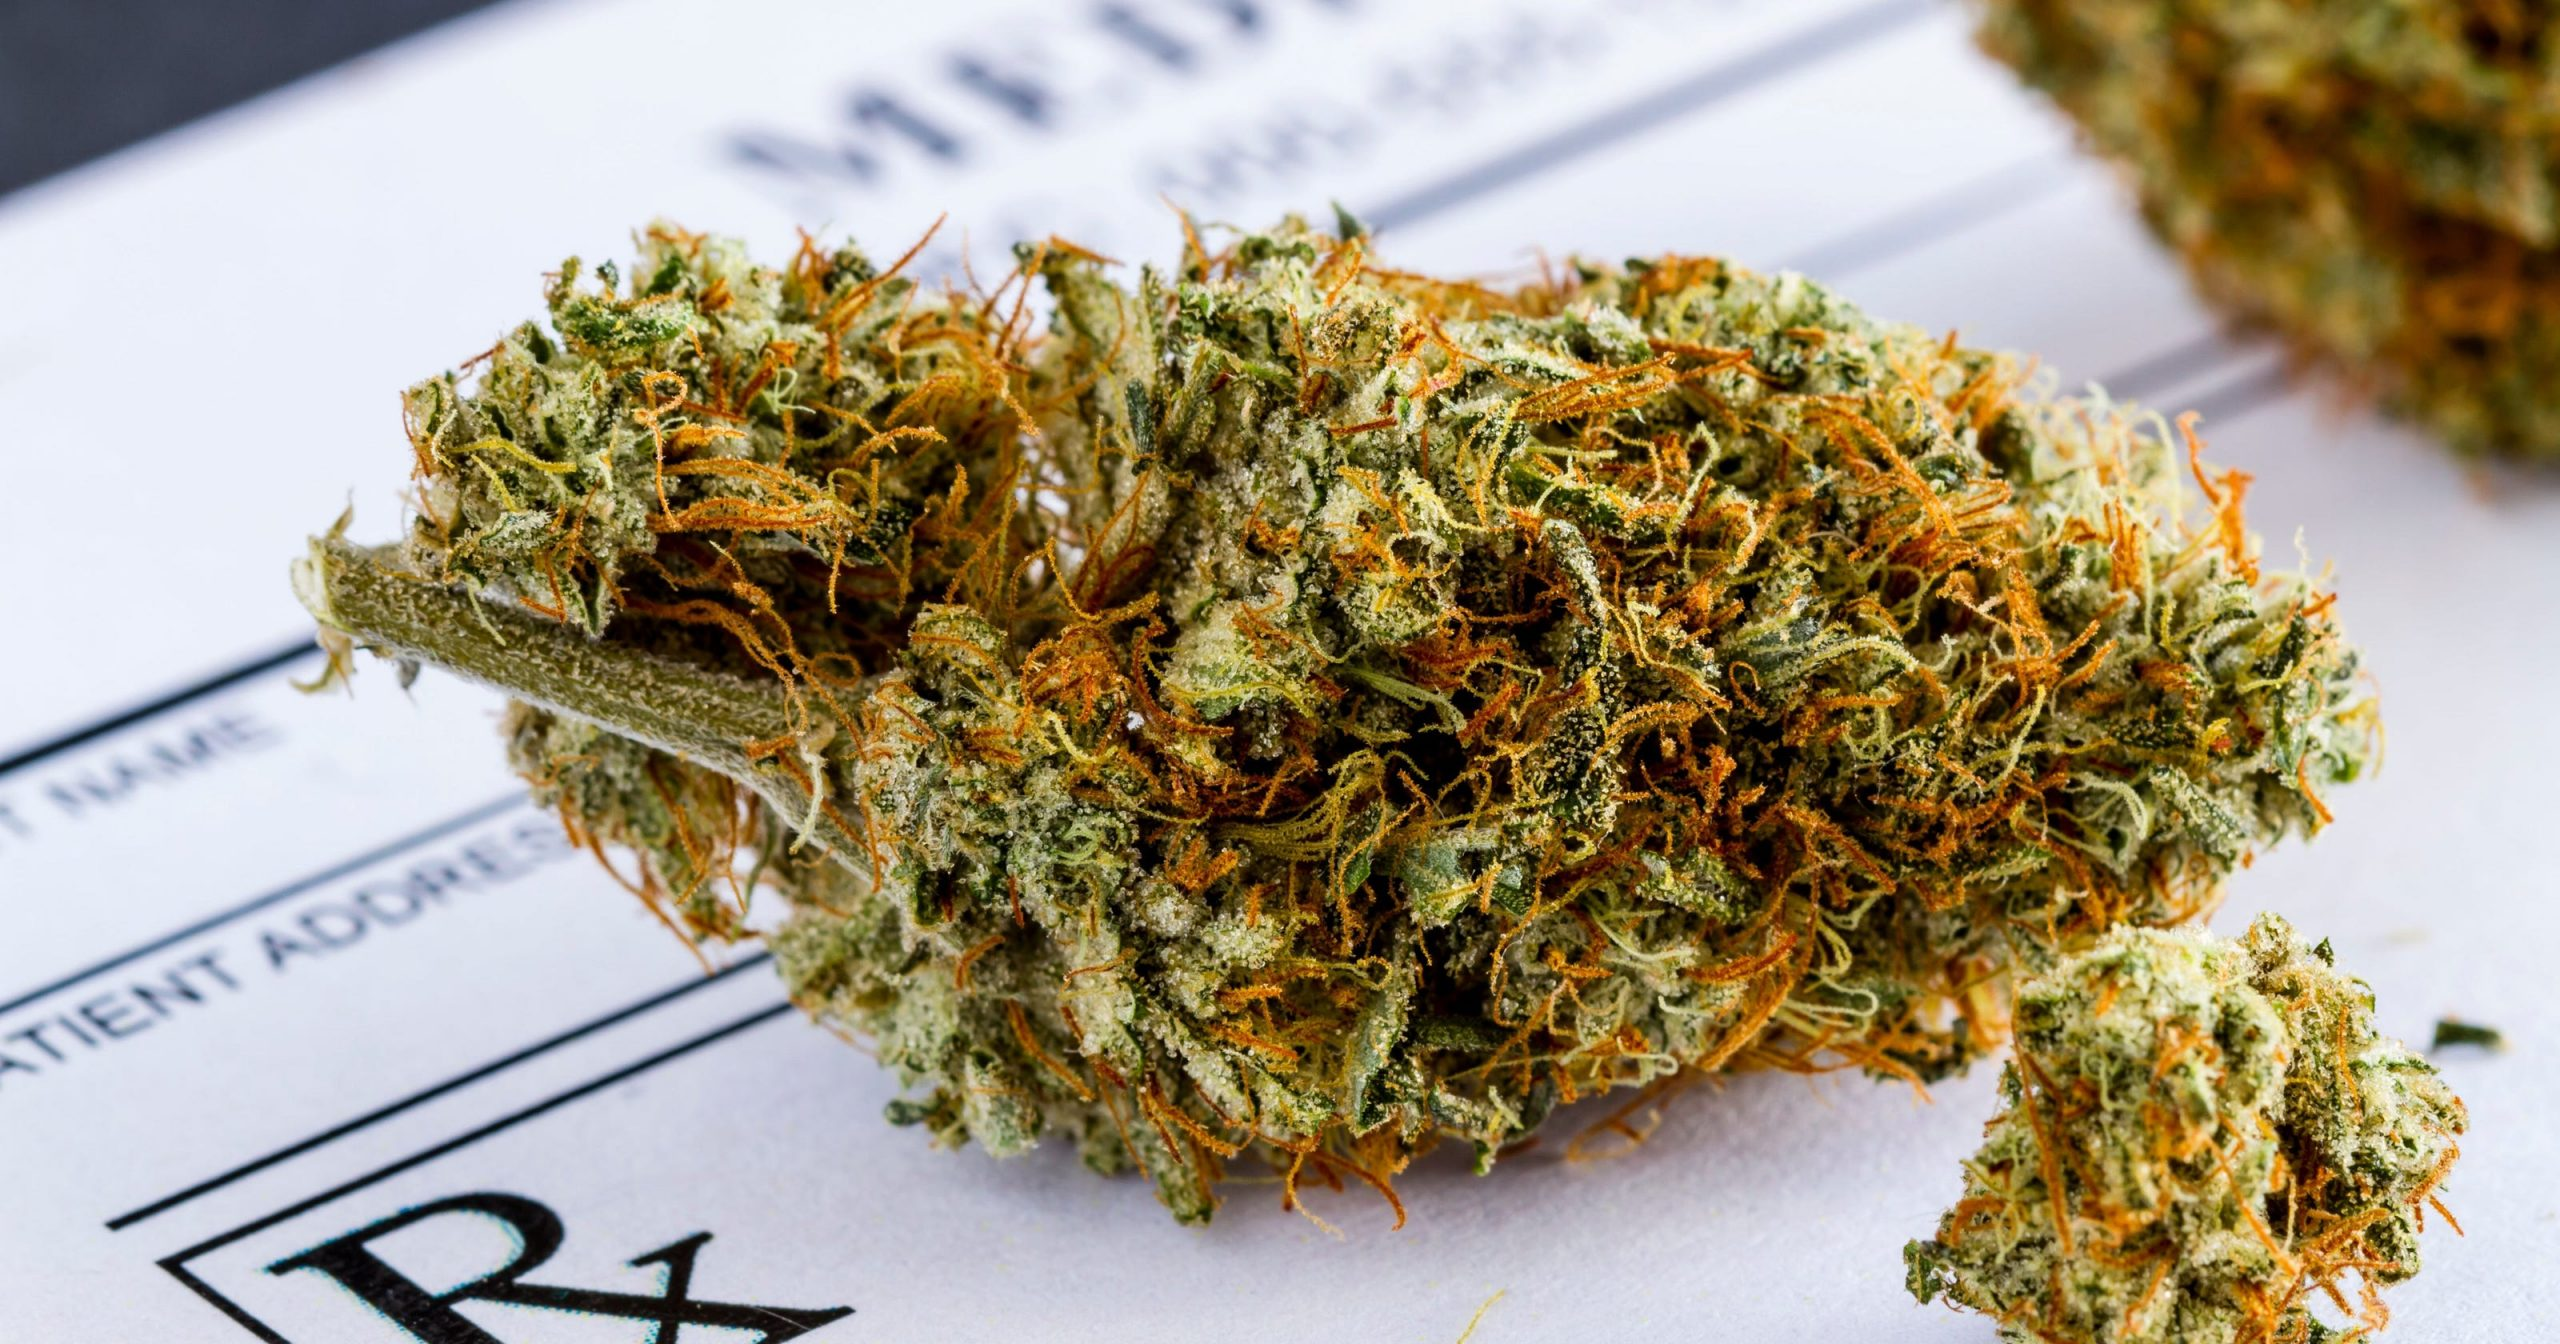 How to buy weed legally?